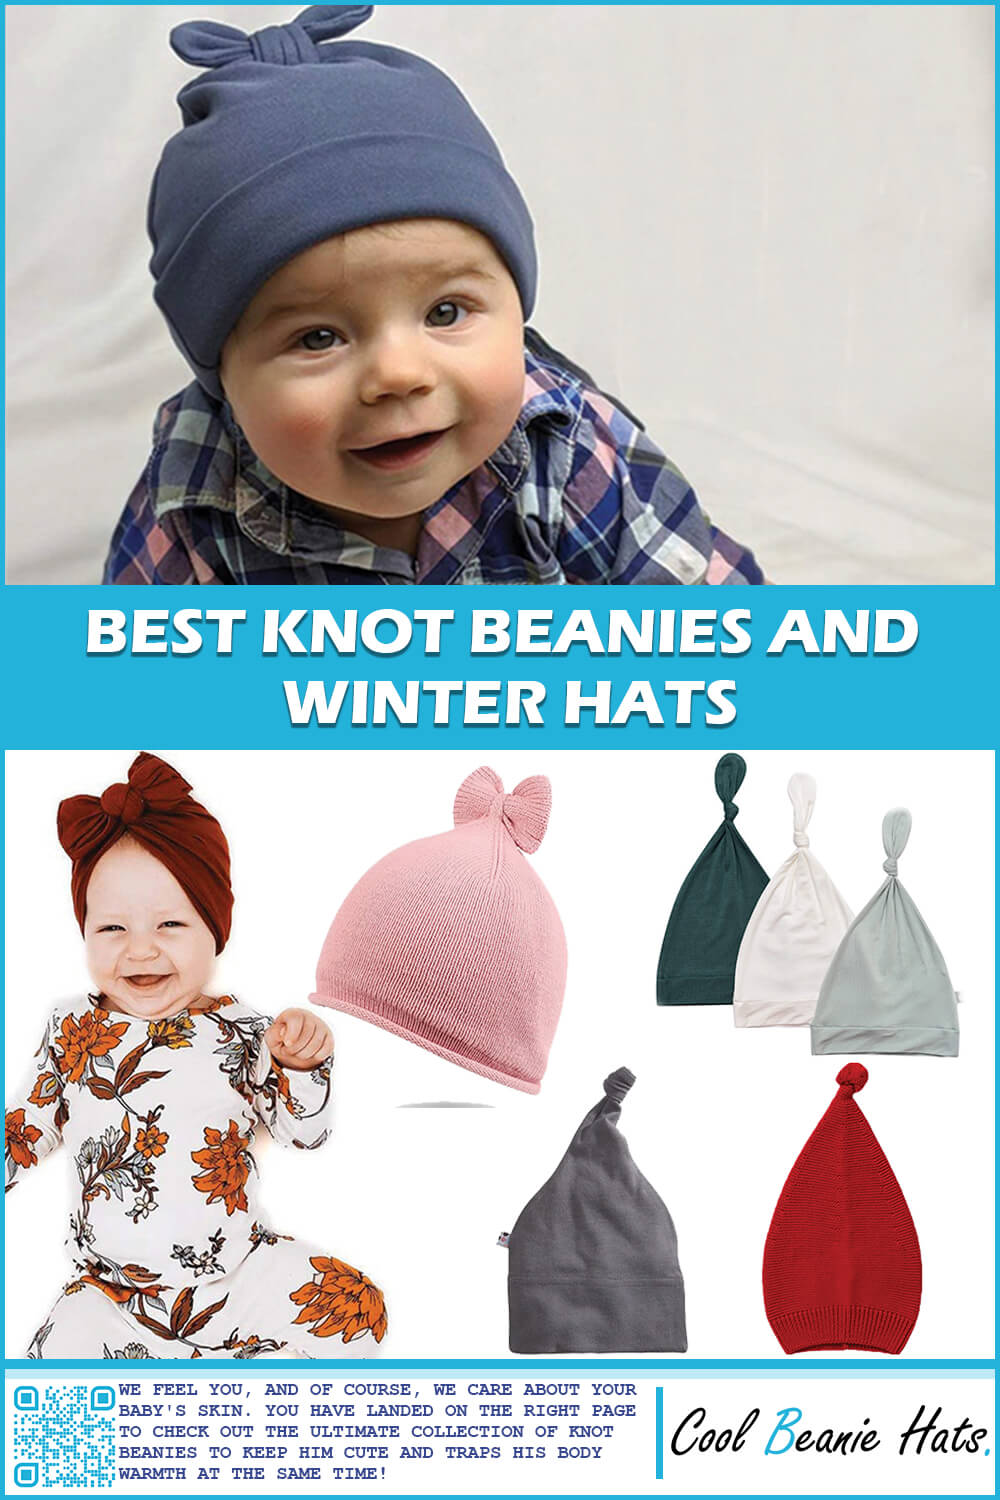 Best Knot Beanies and Winter Hats